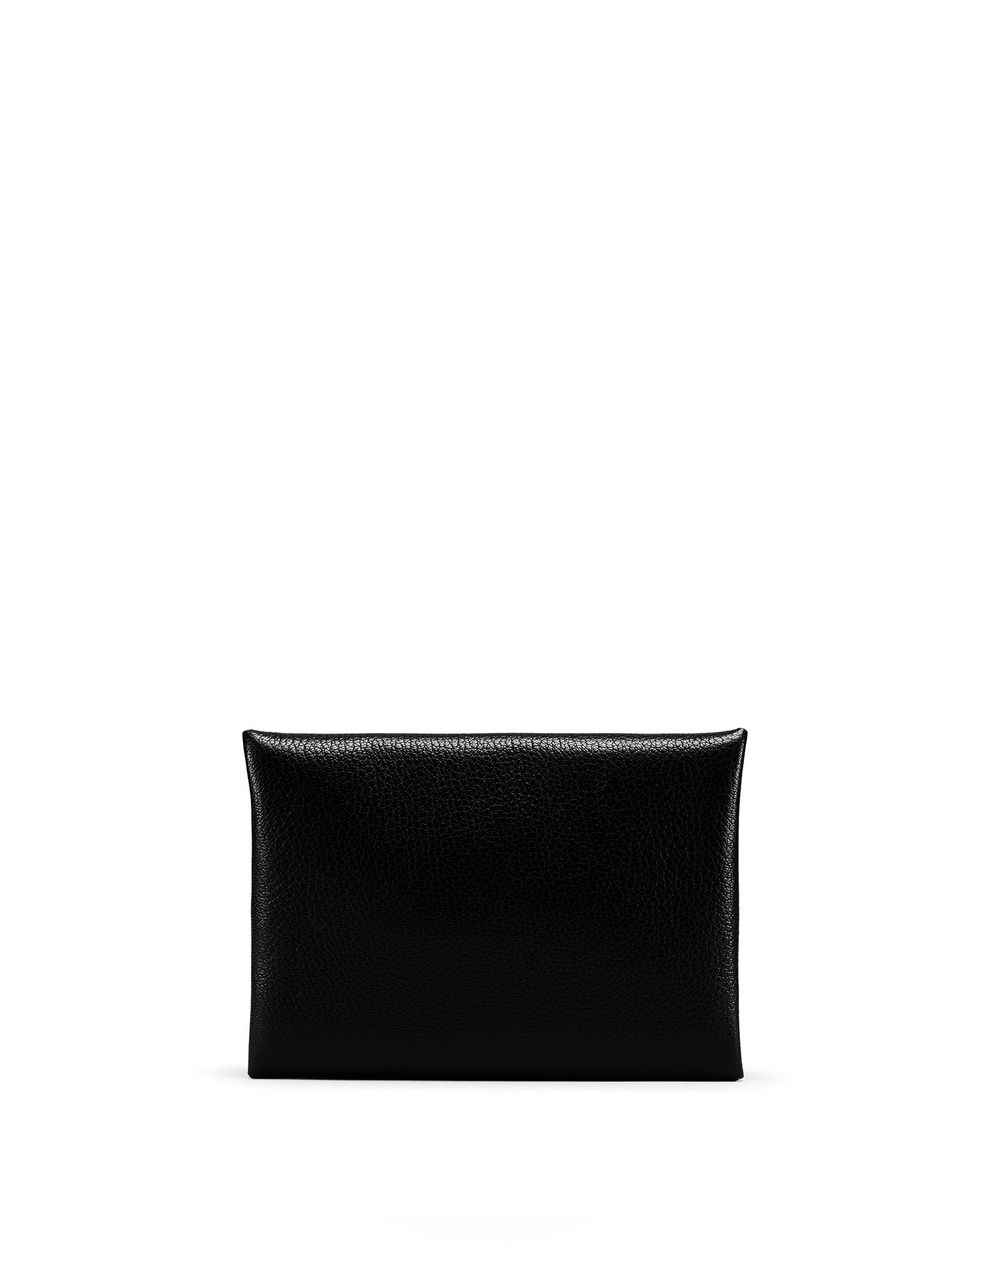 MOTHER AND CHILD PRINT ENVELOPE CLUTCH - Lanvin